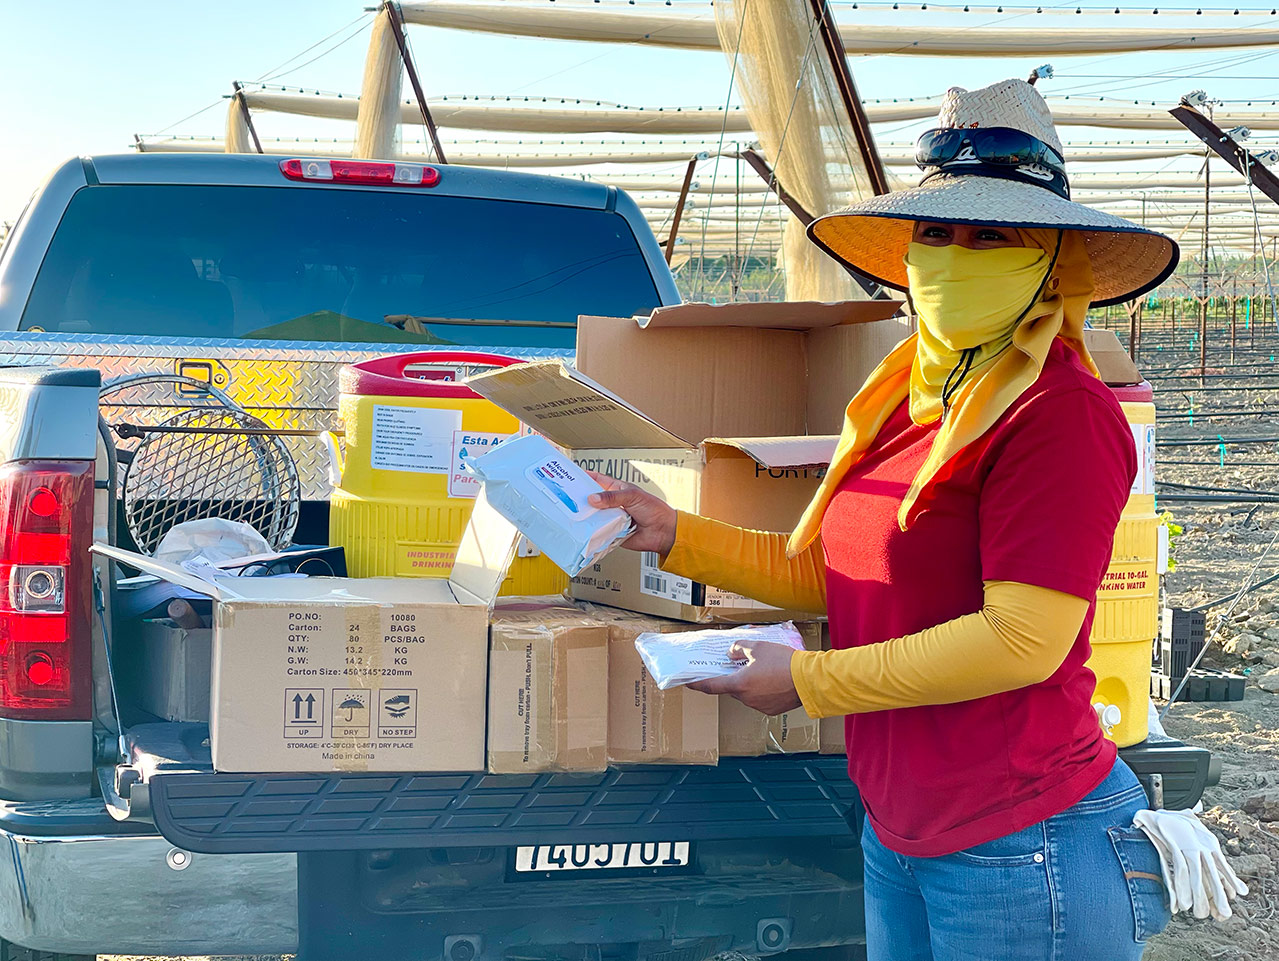 A person waring a tall straw hat, yellow face scarf, and red shirt is standing in front of the bed of a truck. The truck has large insulated water dispensers in it and several cardboard boxes. The person is holding a package of alcohol wipes and appears to be smiling behind their face scarf. They are standing in a vineyard with rows of vines and netting behind them.